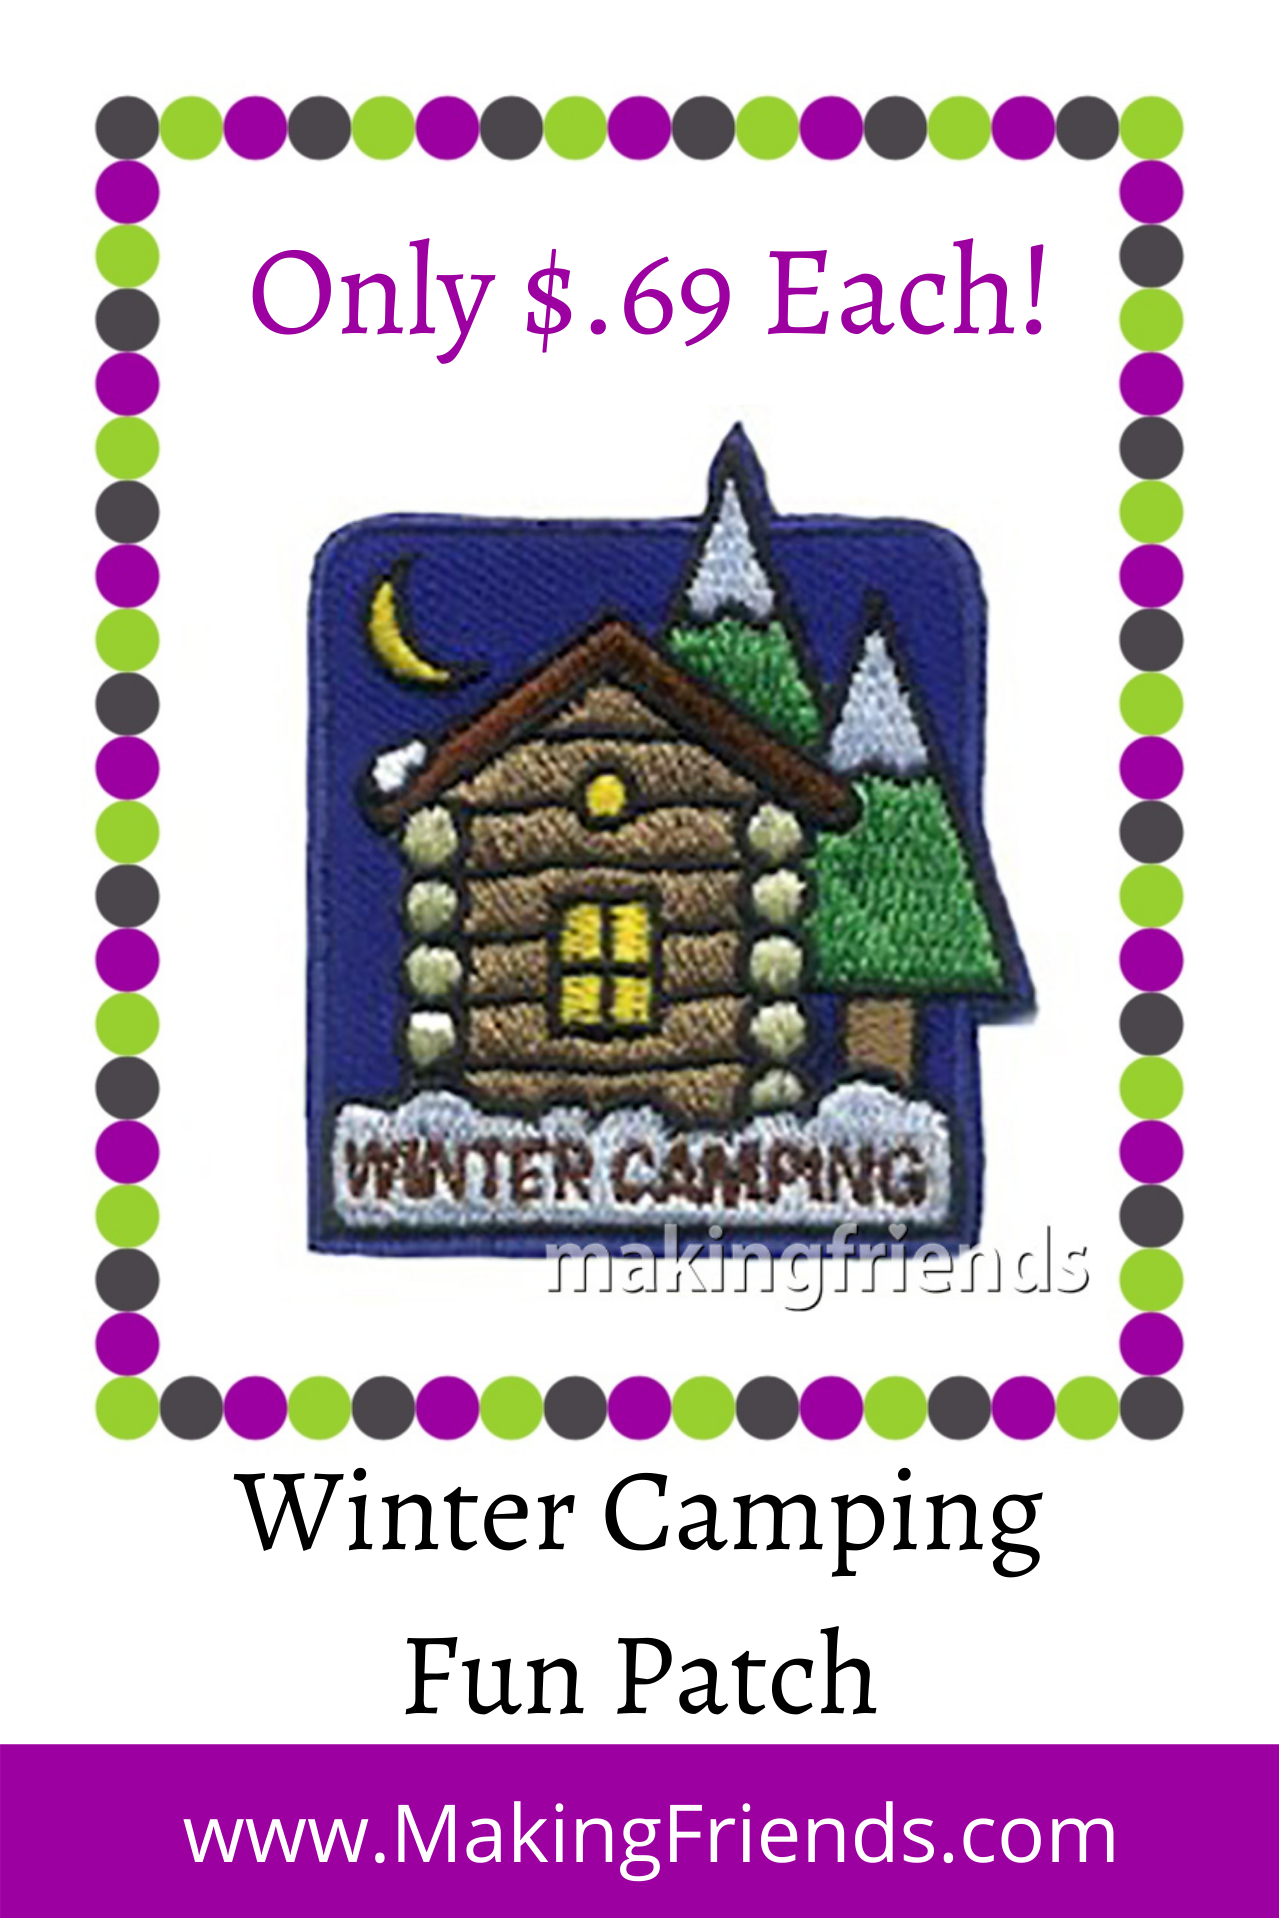 Find a cozy cabin, make sure the girls dress for the cold, and have fun winter camping! $.69 each free shipping available! #makingfriends #winter #wintercamping #campingpatch #wintercampingpatch #cozy #fireplace #snow #girlscoutcamping via @gsleader411